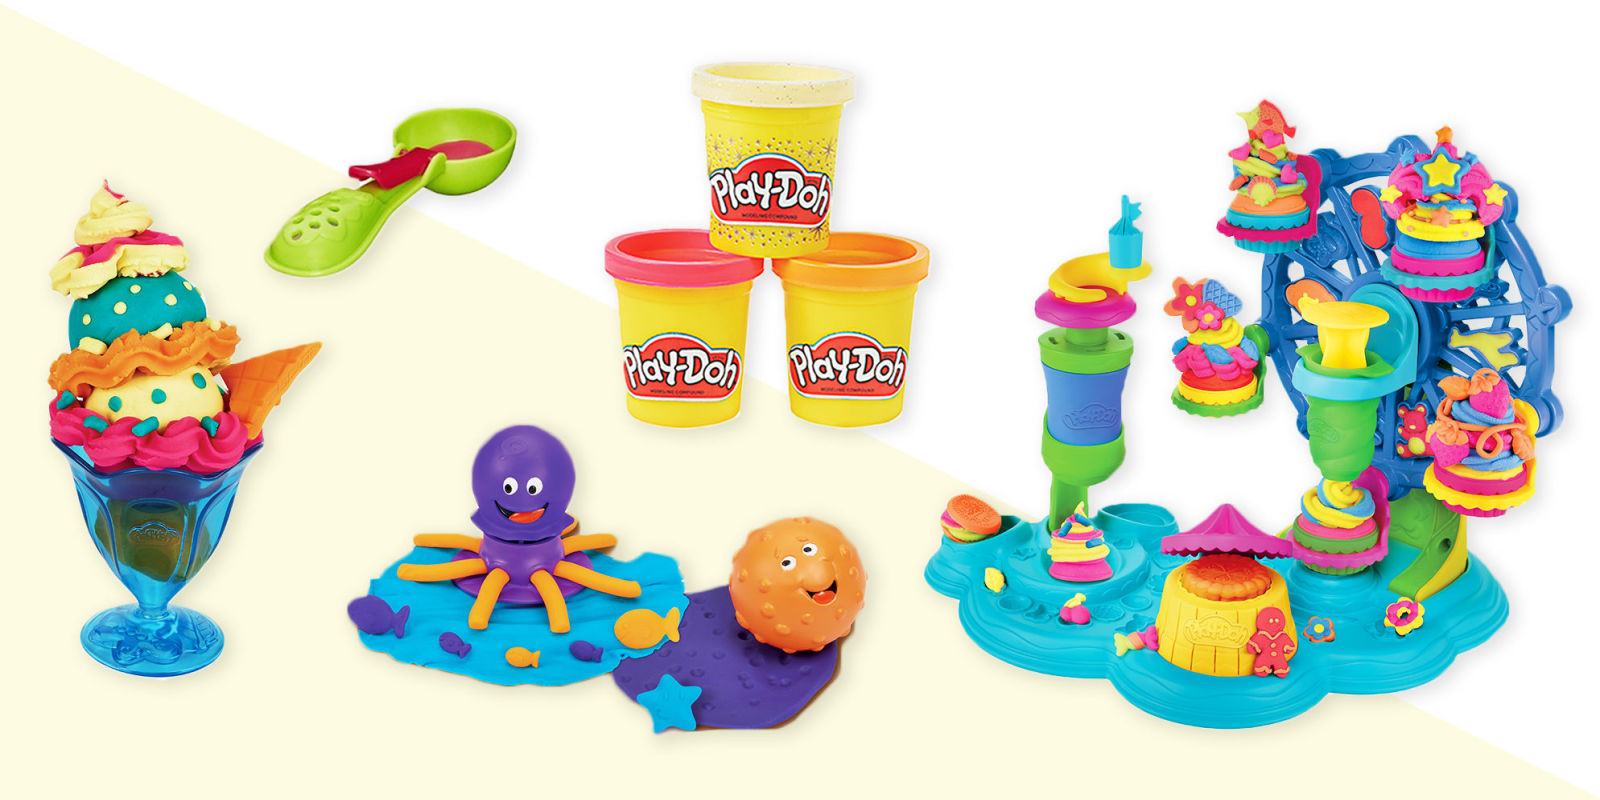 15 Best Play Doh Sets For 2017 Classic Play Doh Playsets